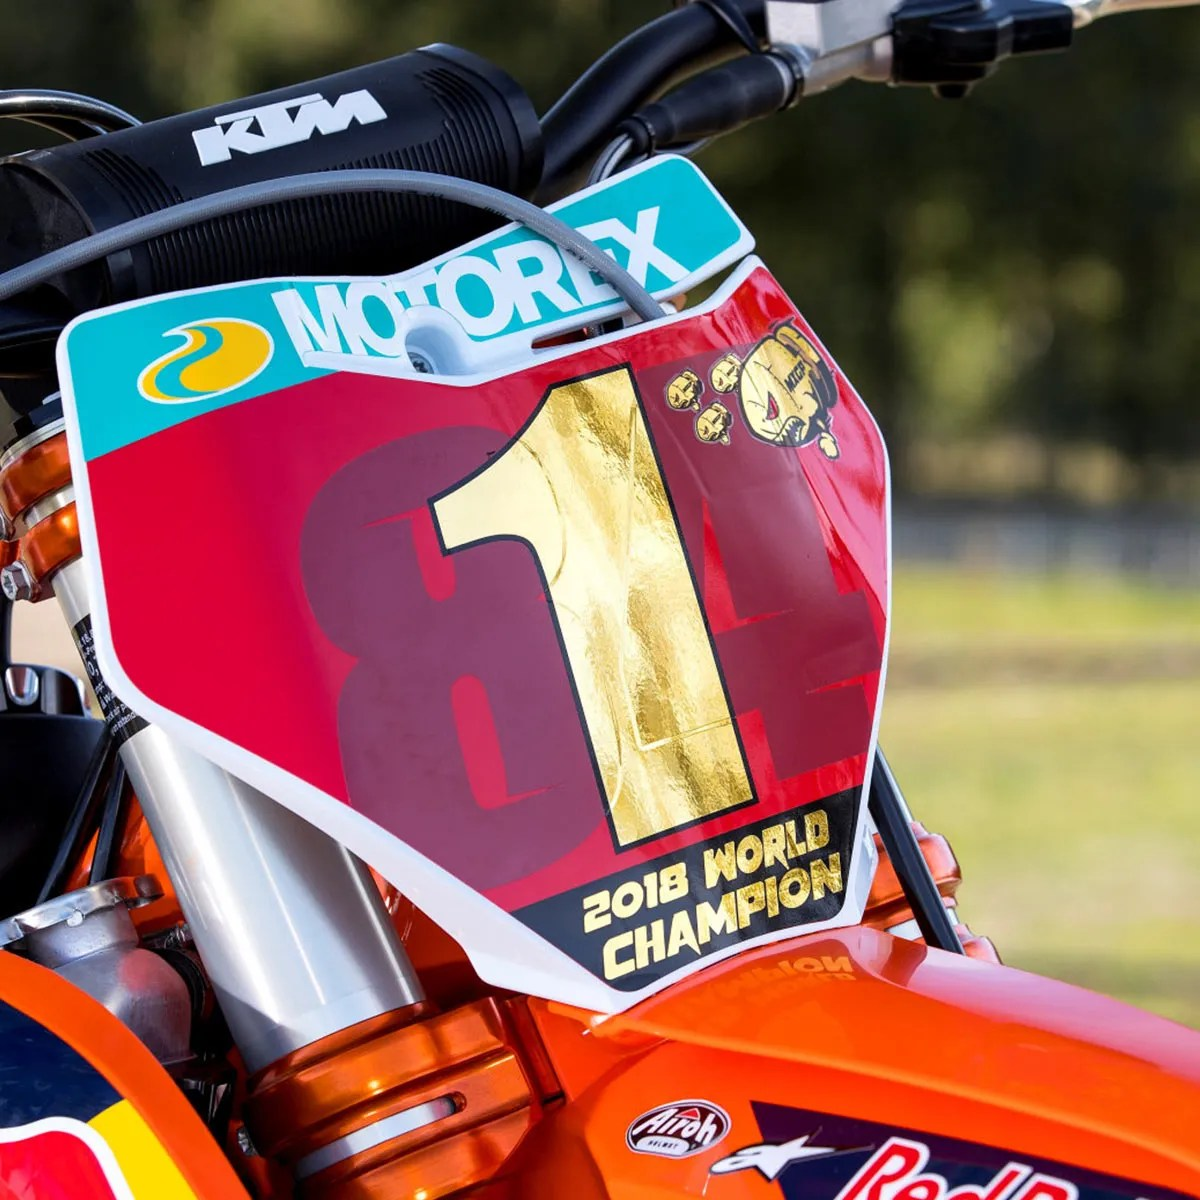 450-SX-F-Herlings-Replica1